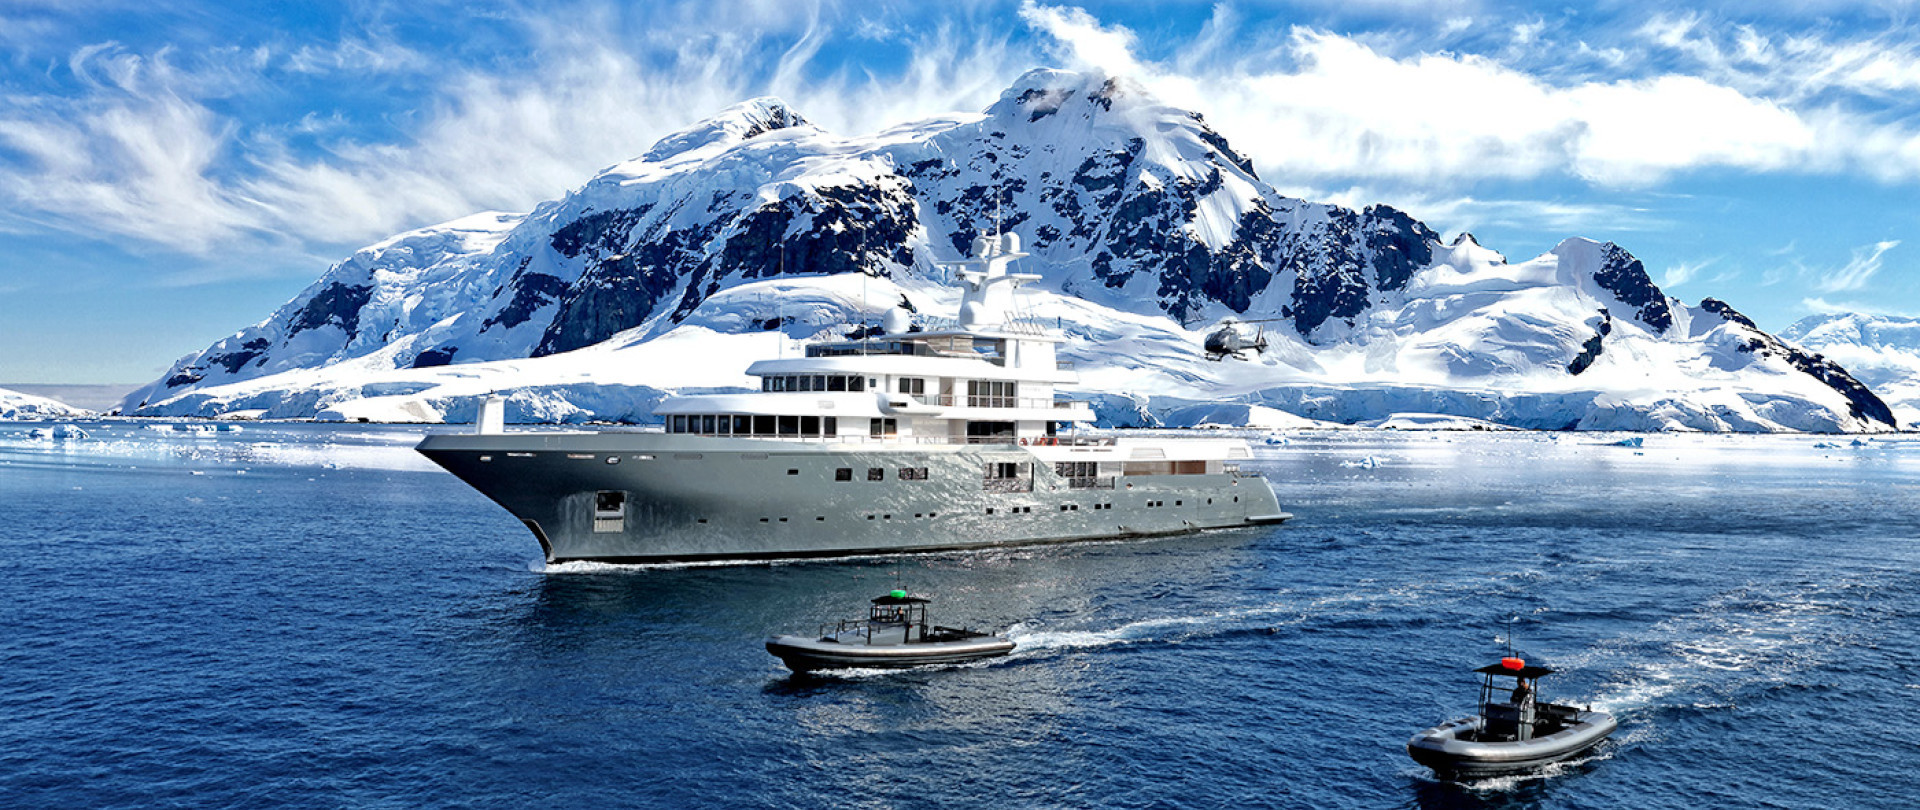 antarctica yacht charter with whales and ice bergs in the background